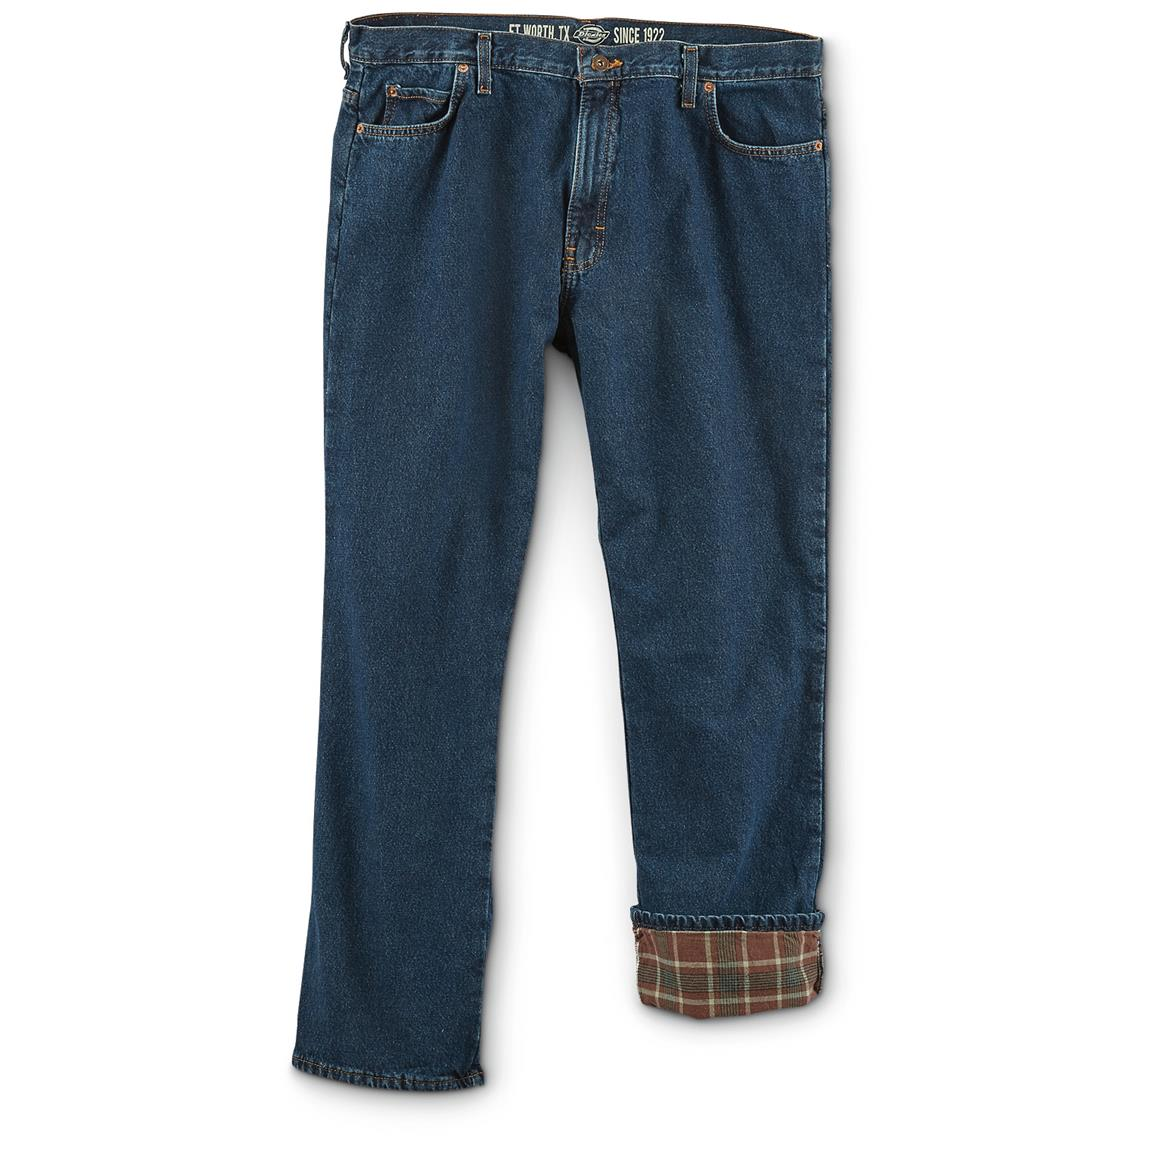 Dickies Men's Flannel Lined Relaxed Fit Jeans, Slight Irregulars, Stonewash